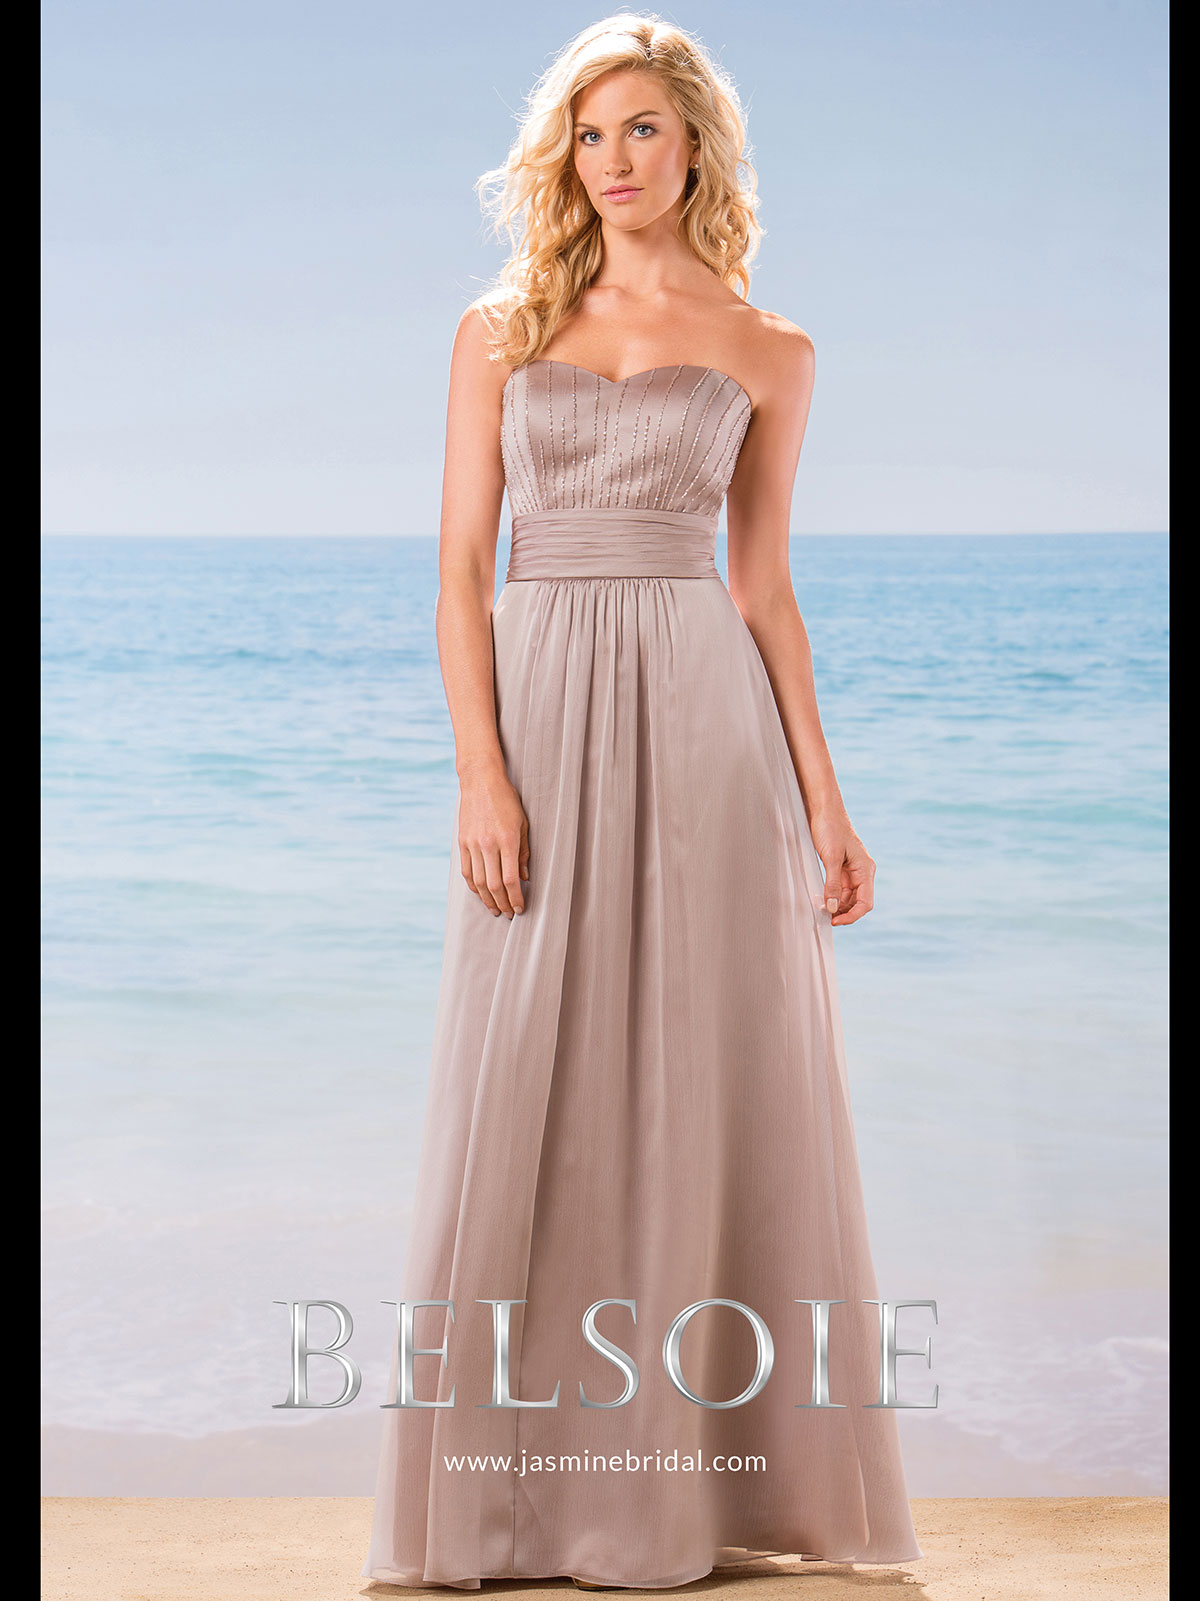 Belsoie l184006 sweetheart chiffon a line bridesmaid dress belsoie l184006 sweetheart beaded bridesmaid dress ombrellifo Image collections